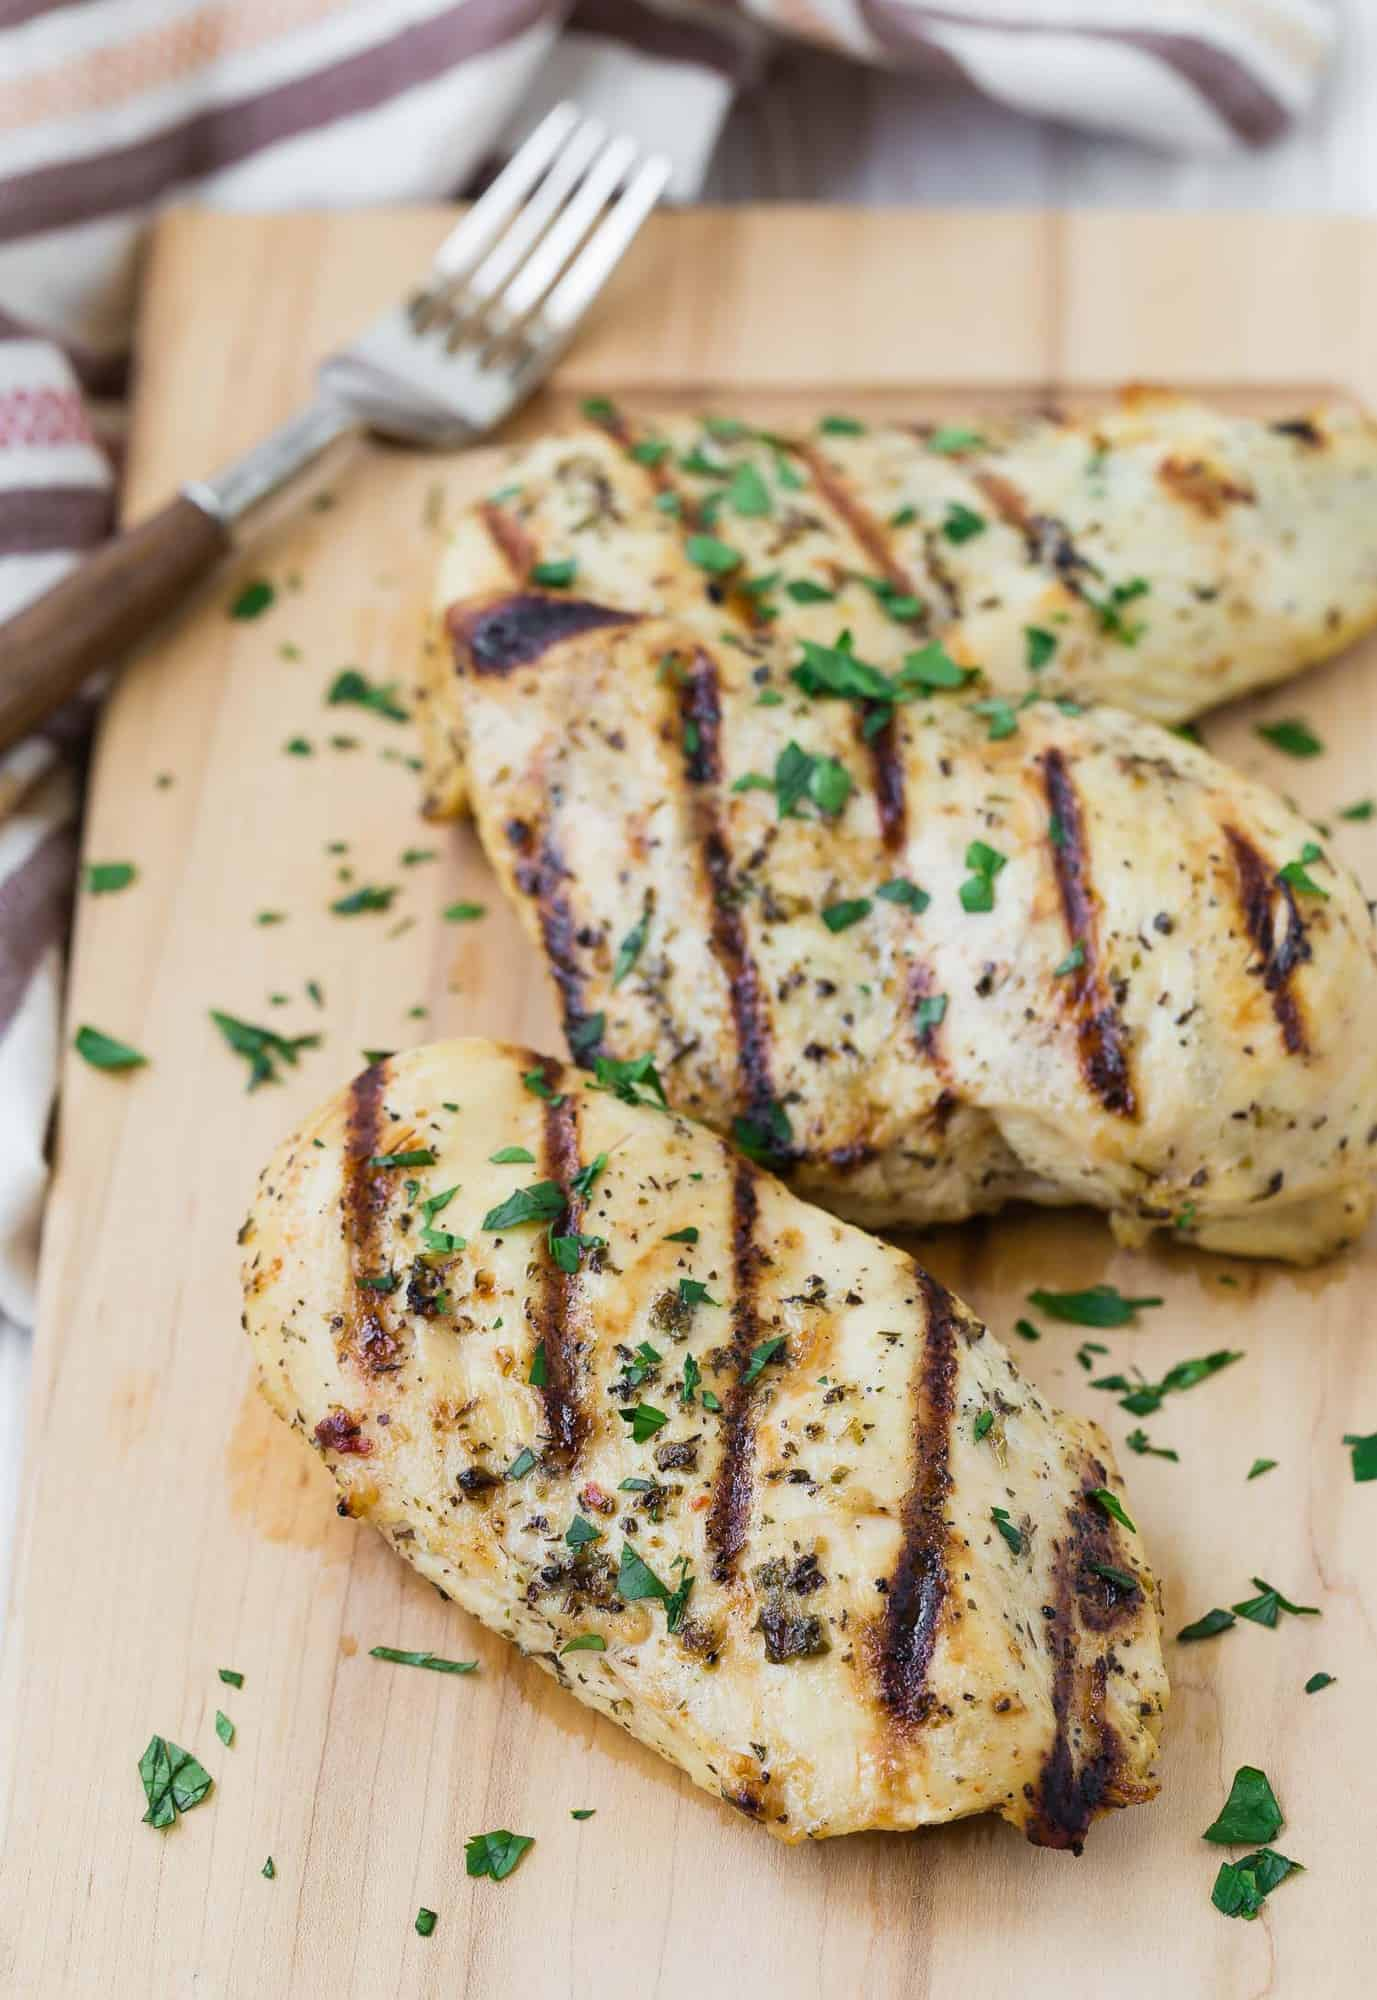 Three grilled boneless skinless chicken breasts on a wooden cutting board with a fork in the background.